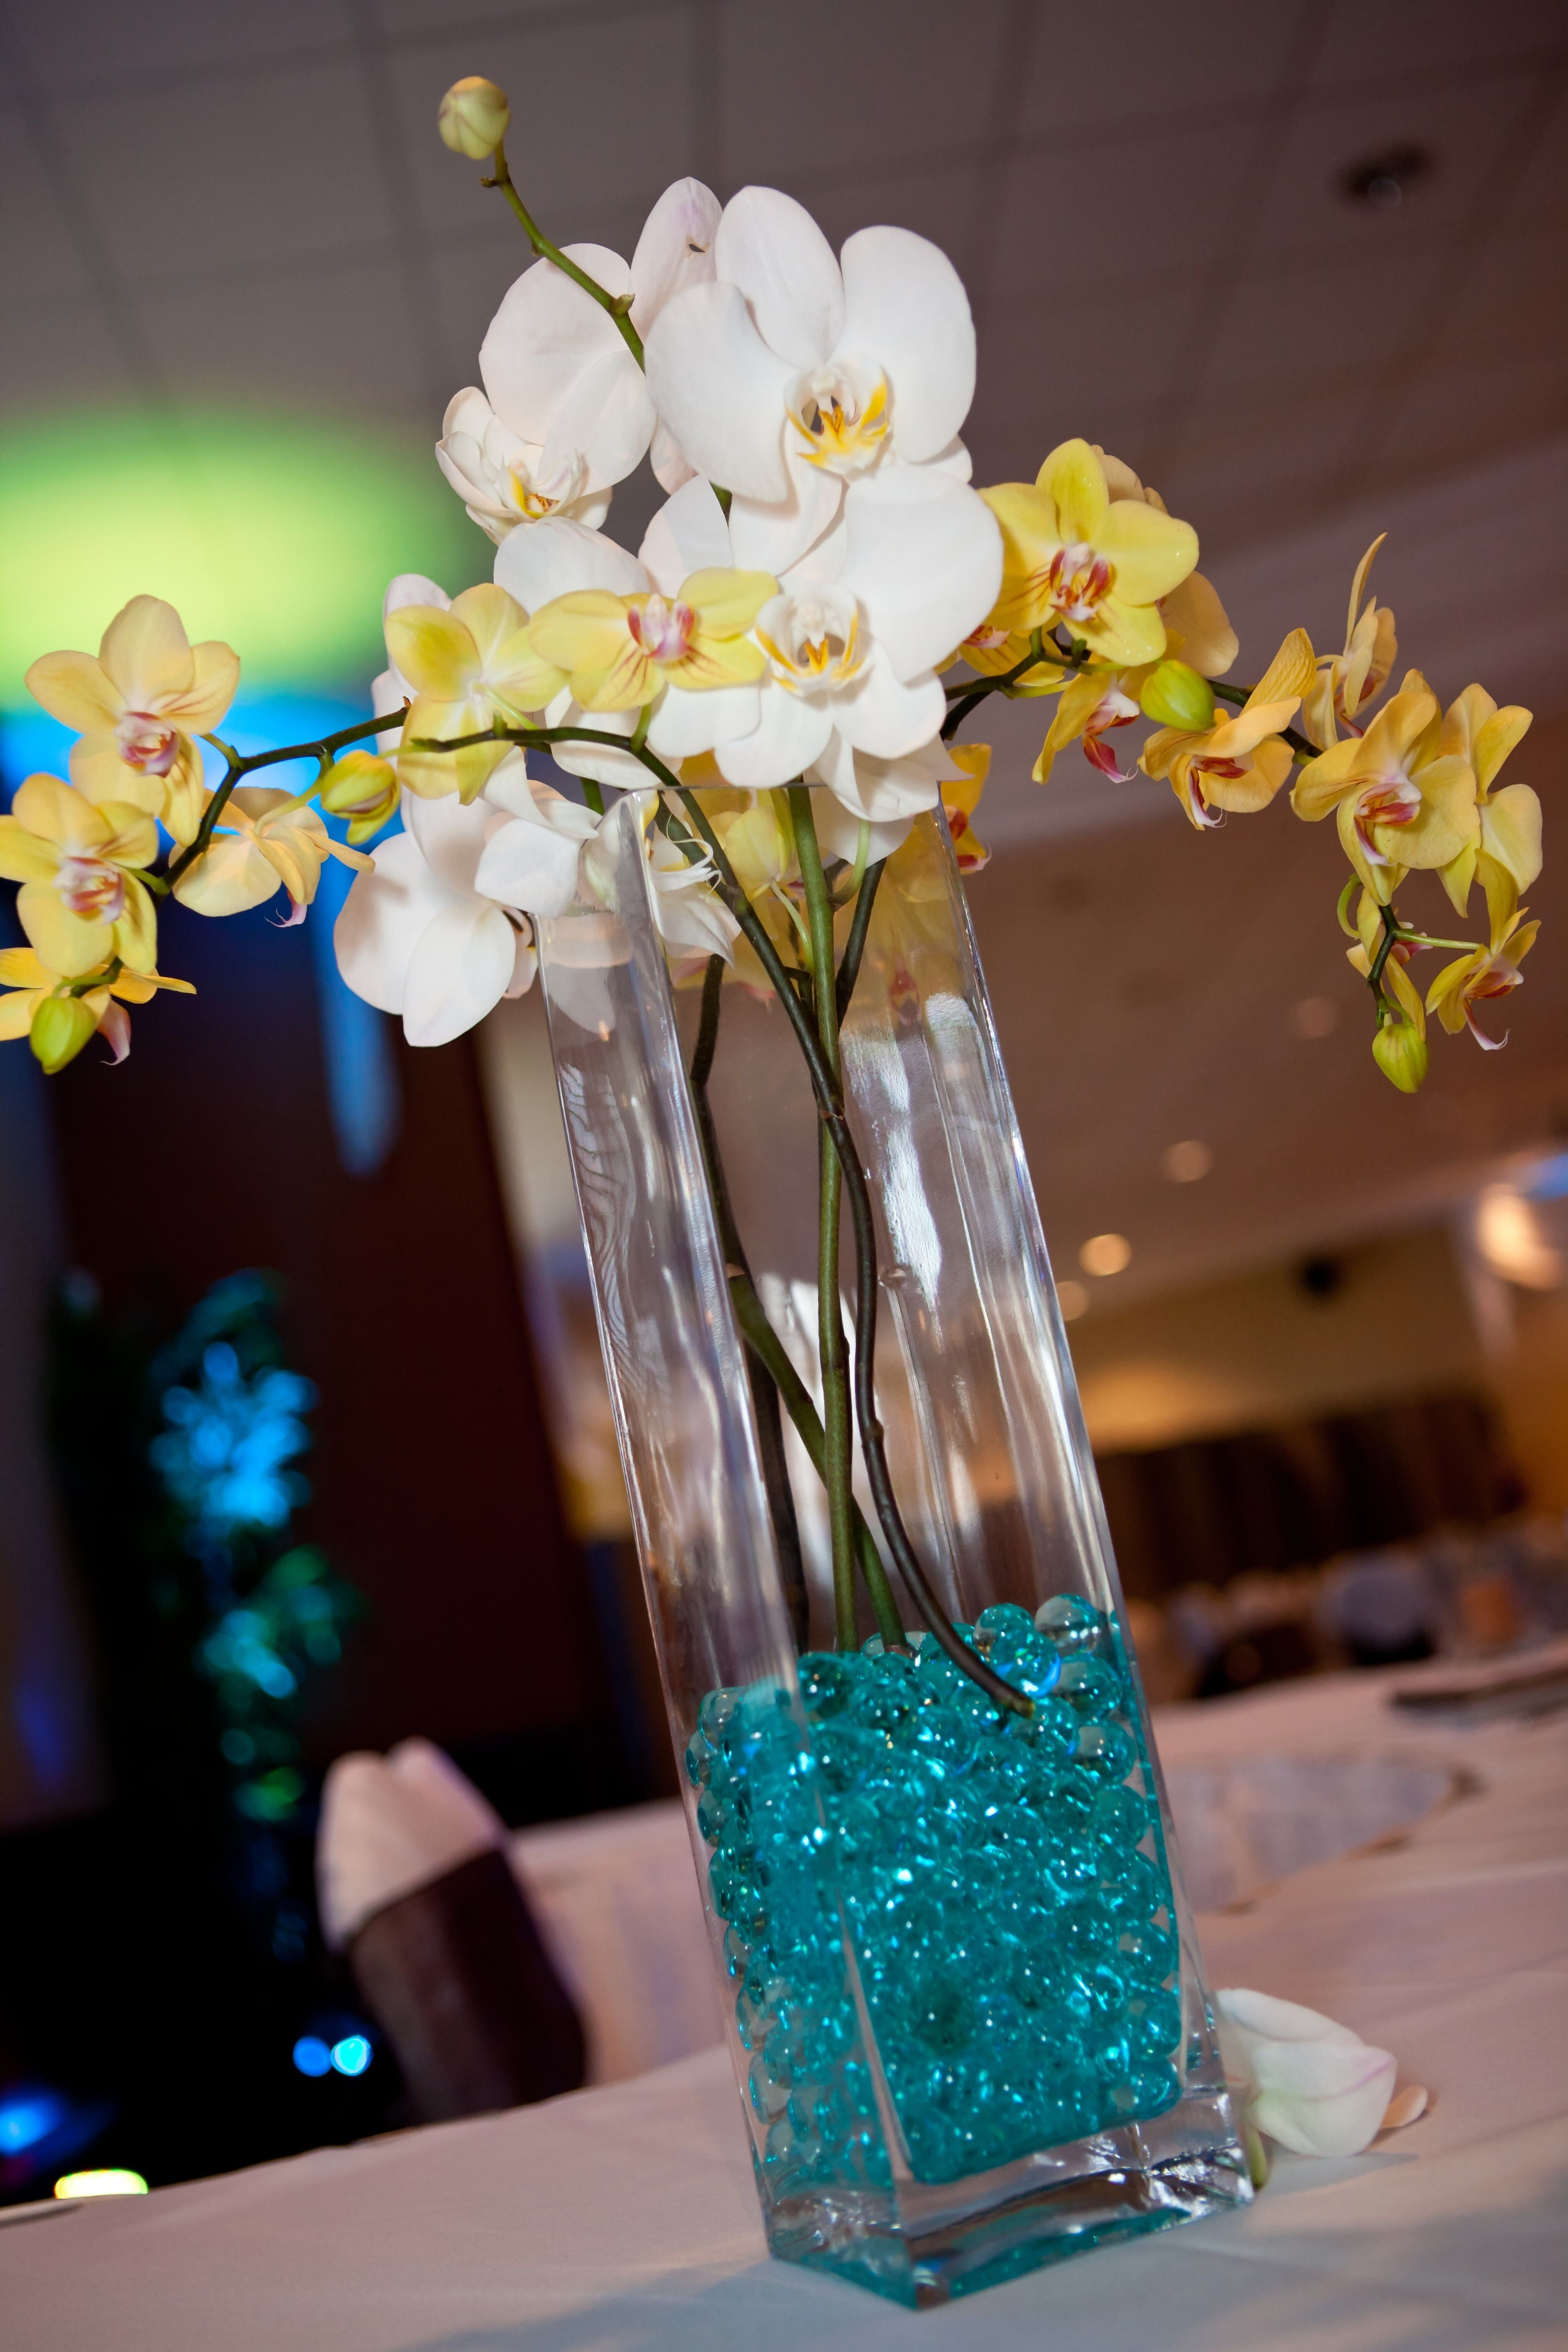 White and yellow orchids teal water beads square vases